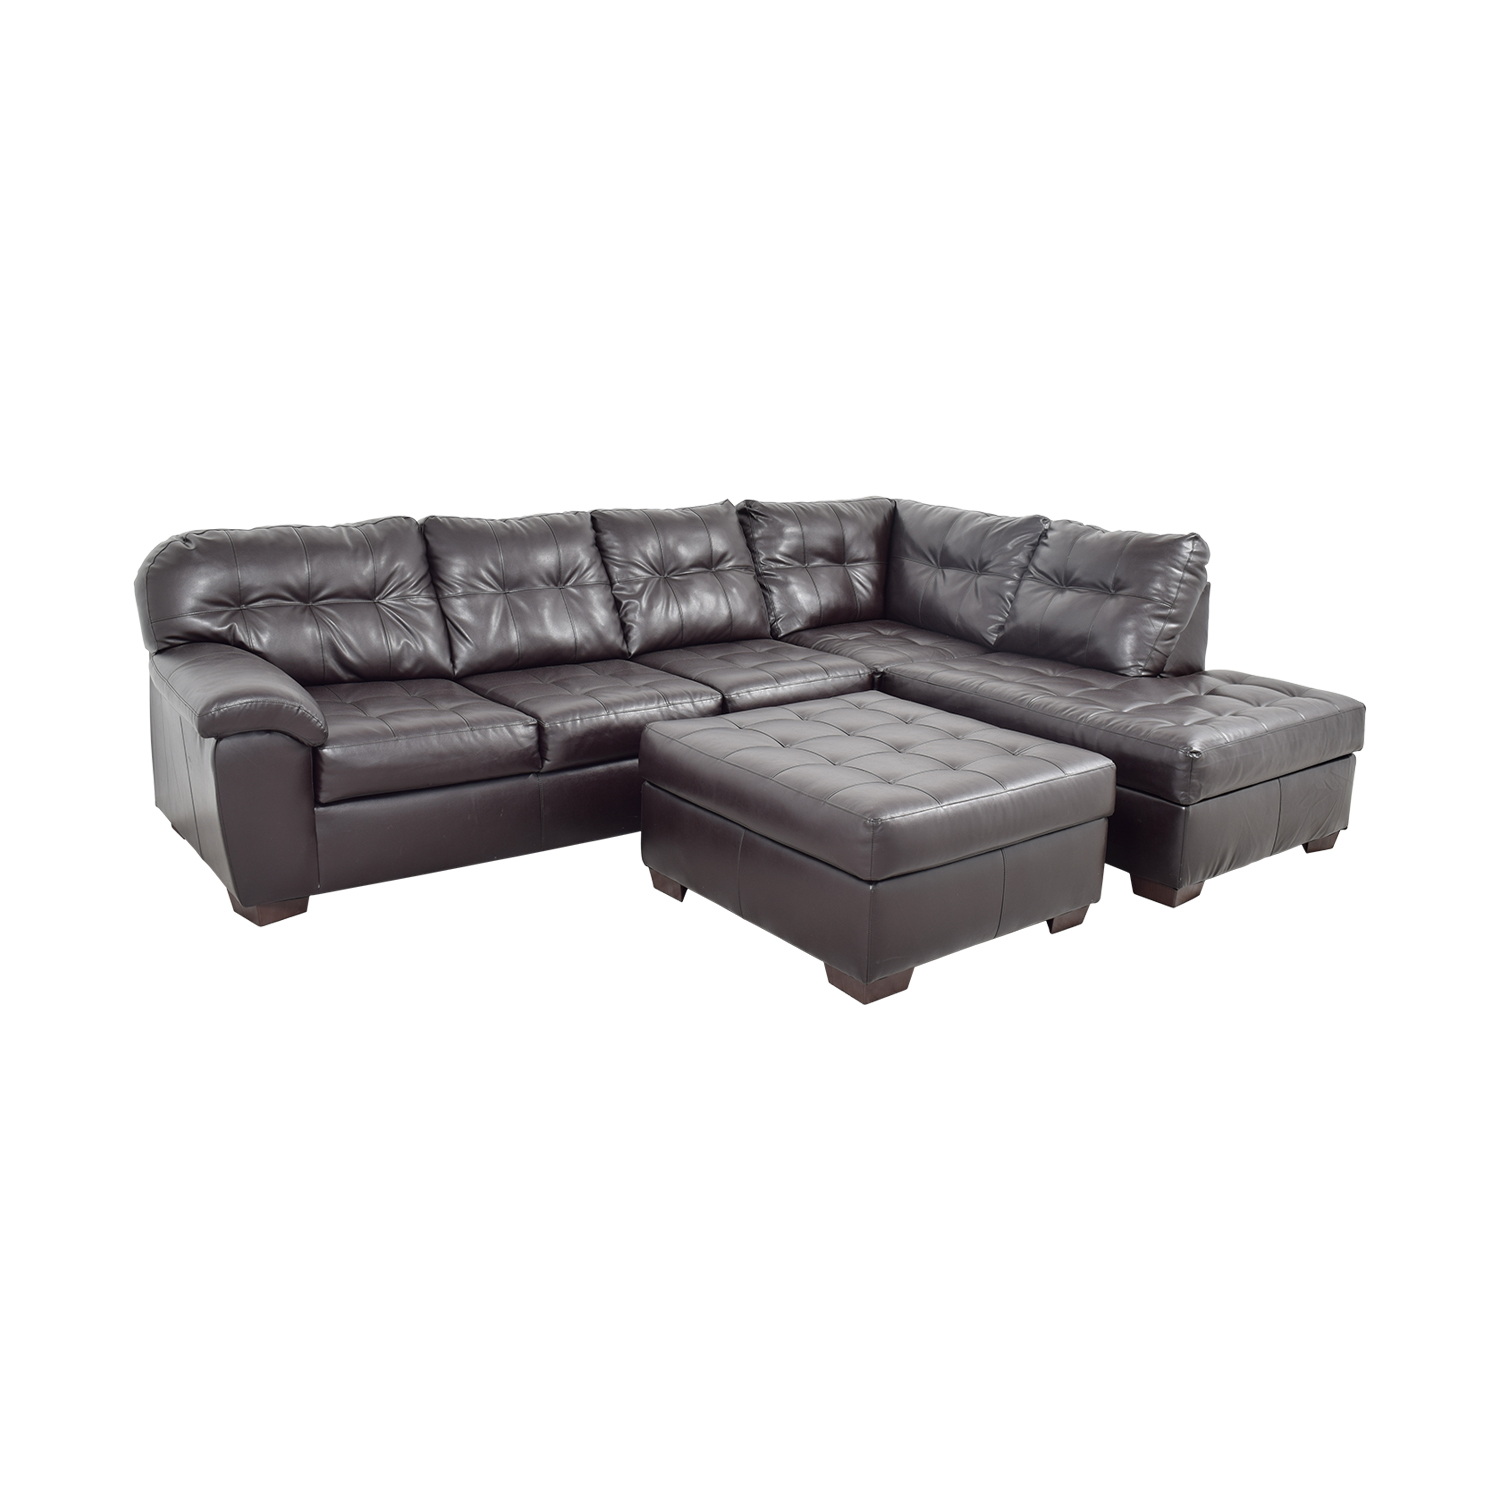 47% OFF - Simmons Simmons Brown Leather Sectional with Ottoman / Sofas